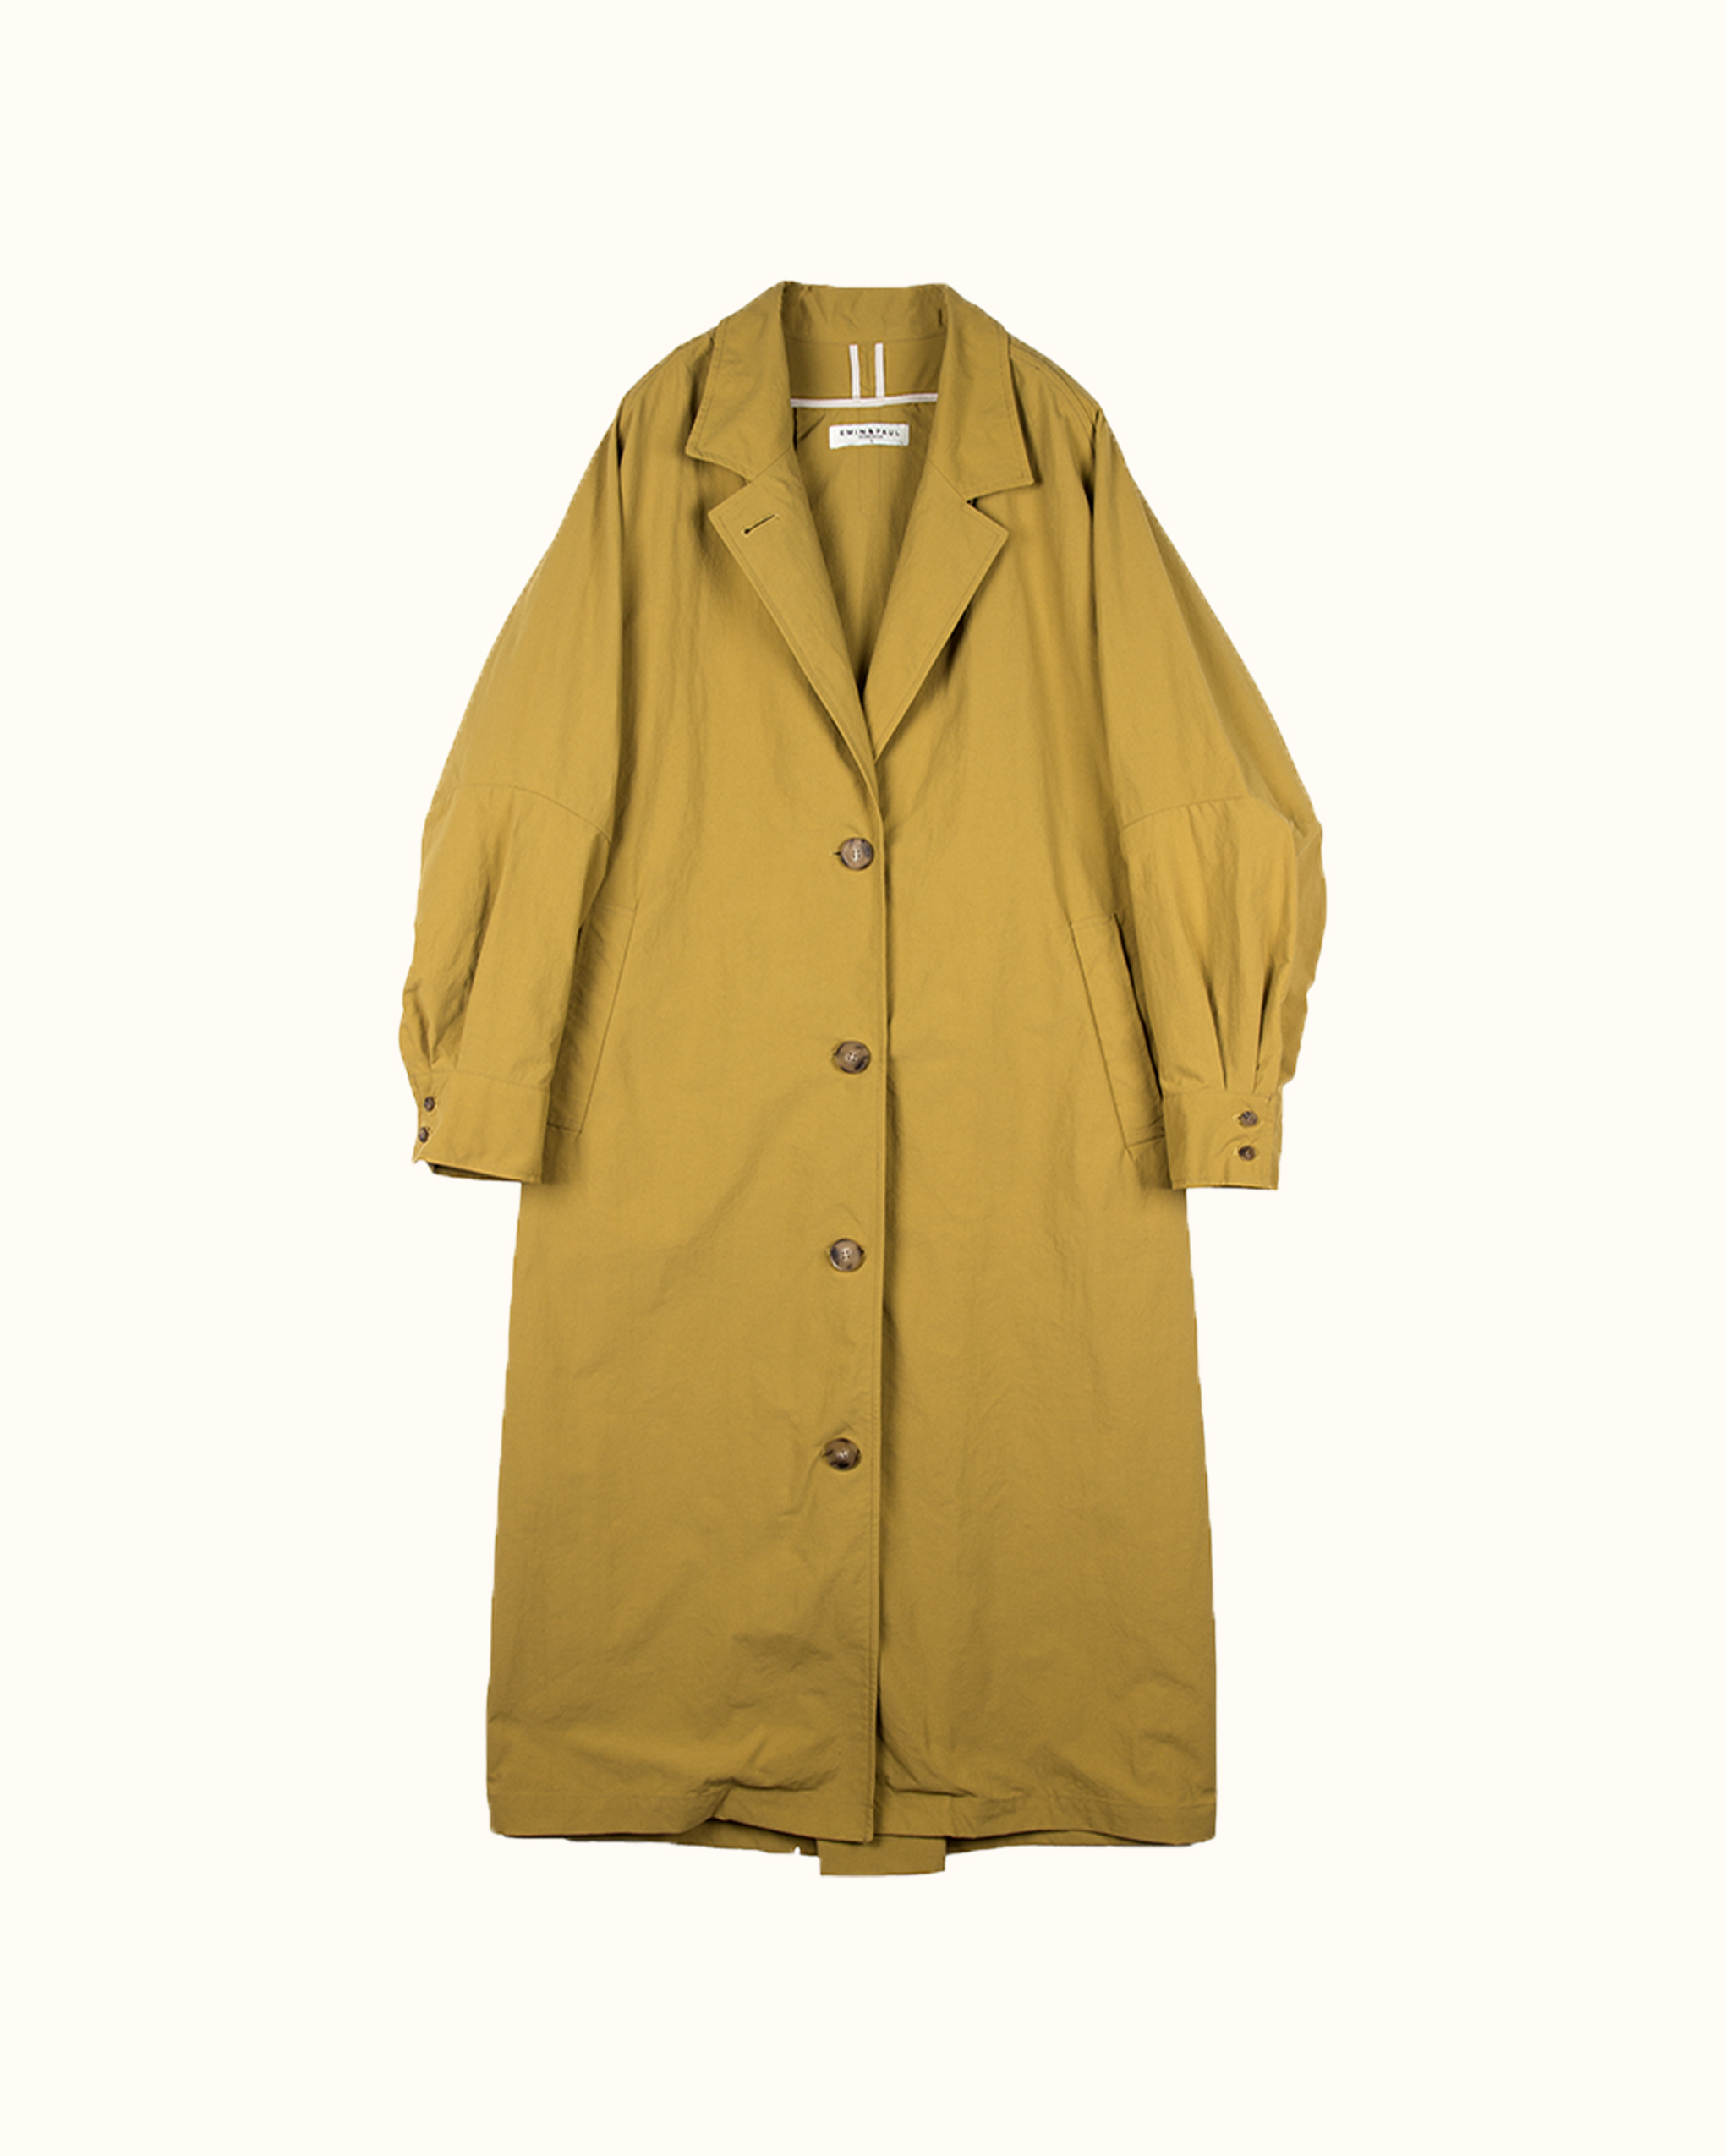 A mustard volume sleeve cotton blend trench coat.